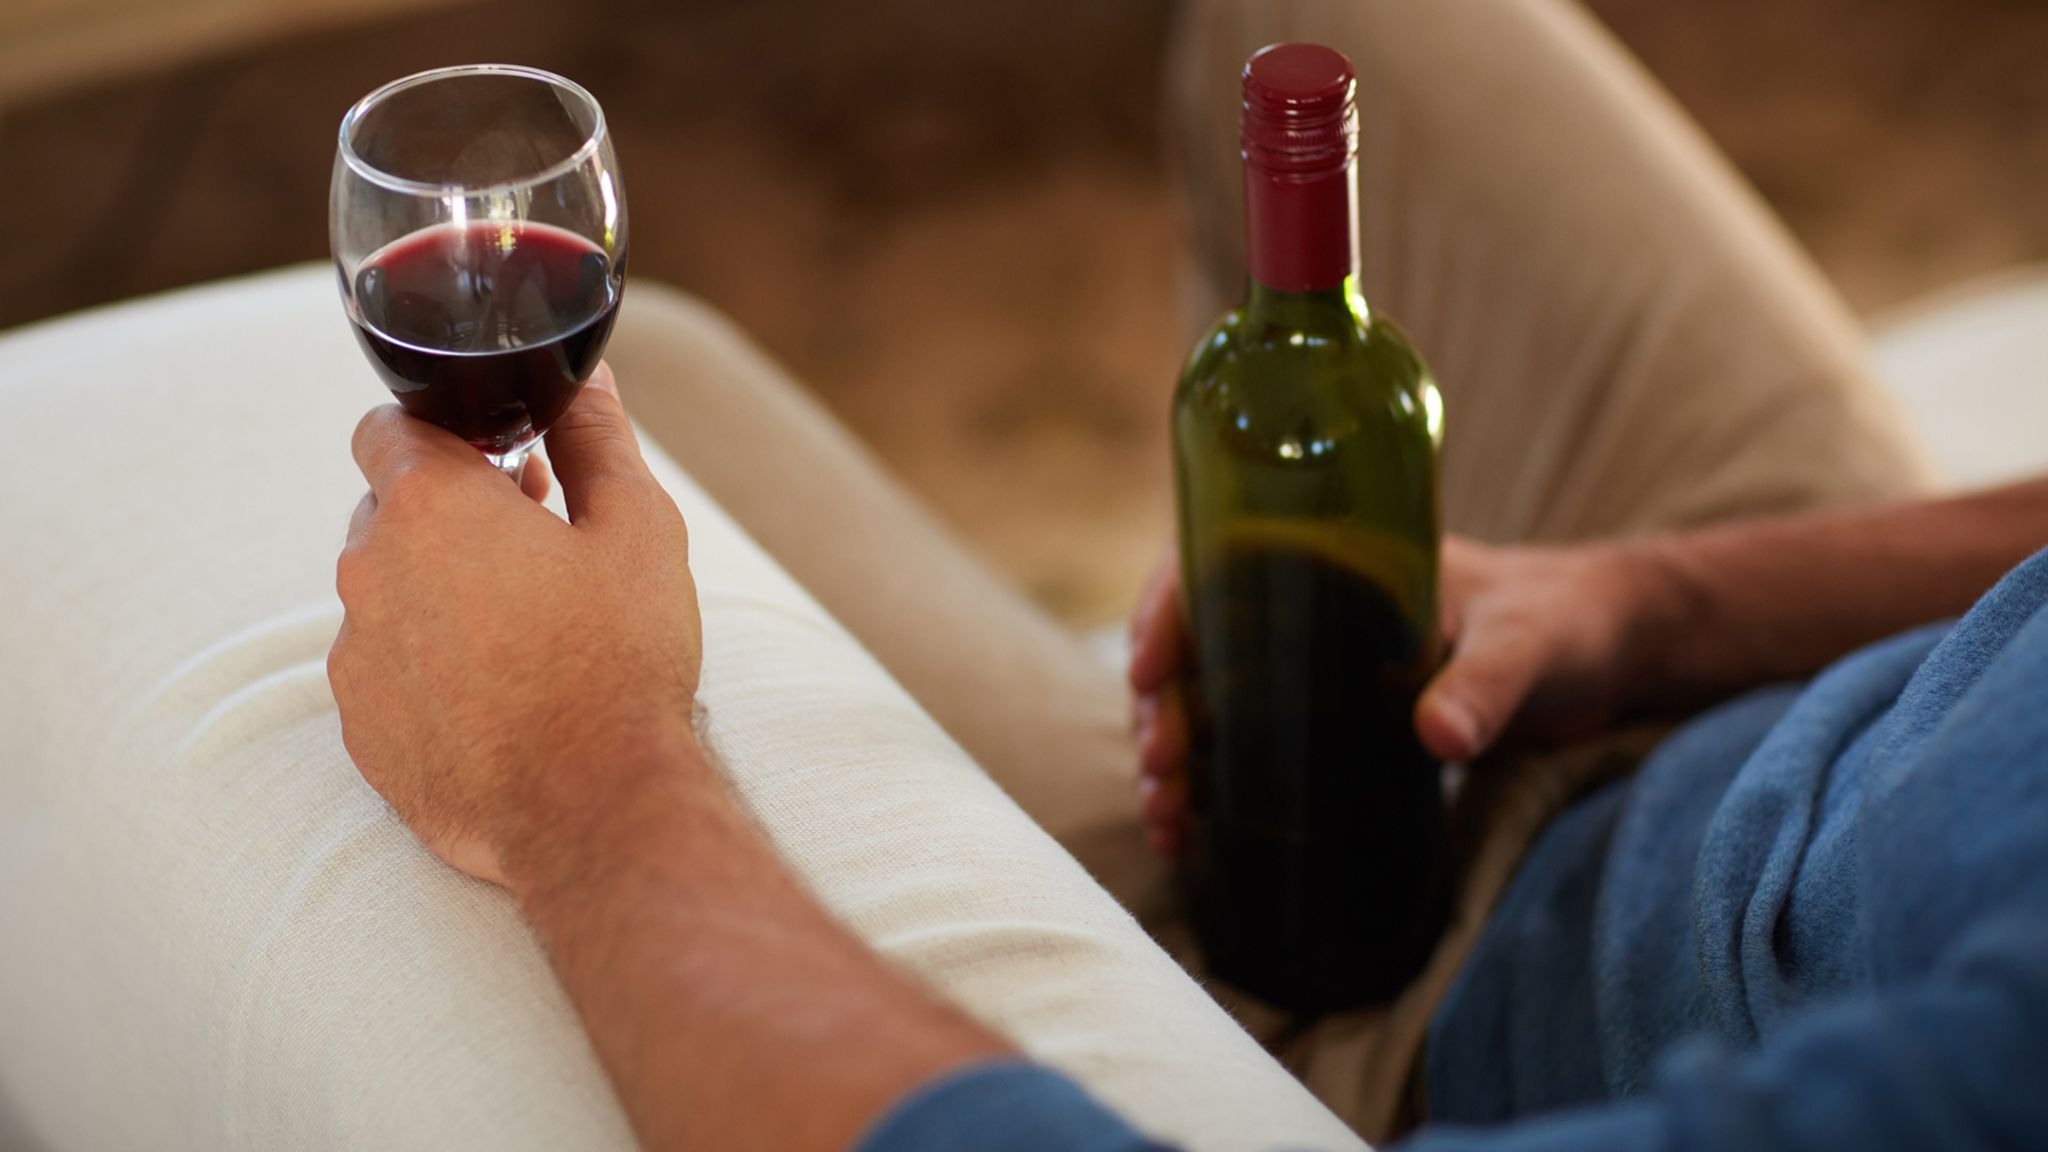 Royal College of Psychiatrists Reveals That Drinking Has Nearly Doubled Since Lockdown